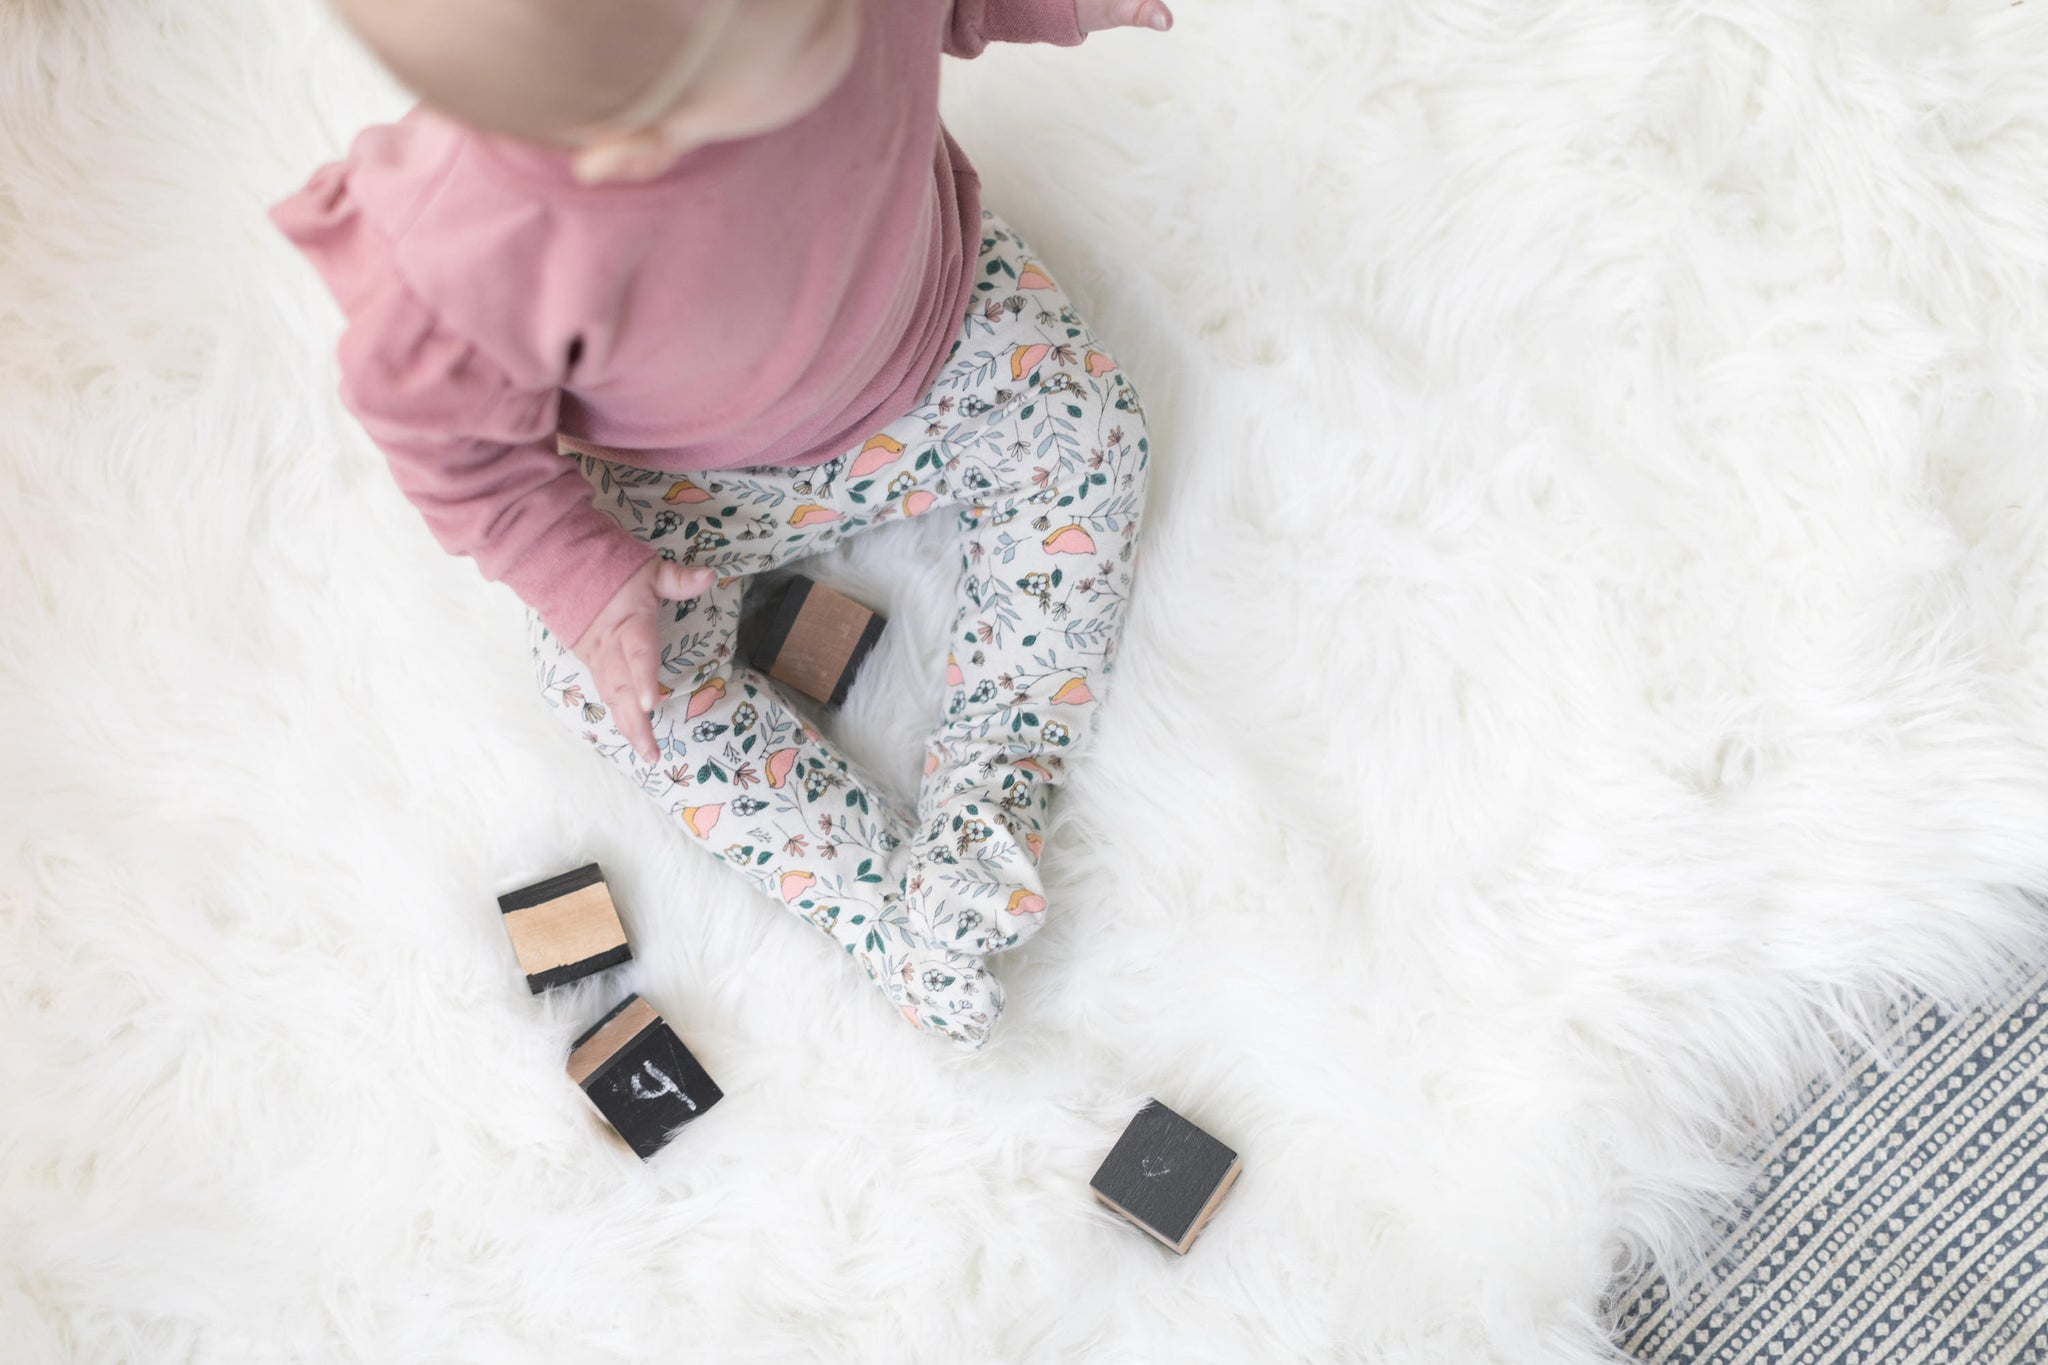 baby-girl-playing-with-blocks-wearing-pink-sweater-and-handmade-floral-footed-pants